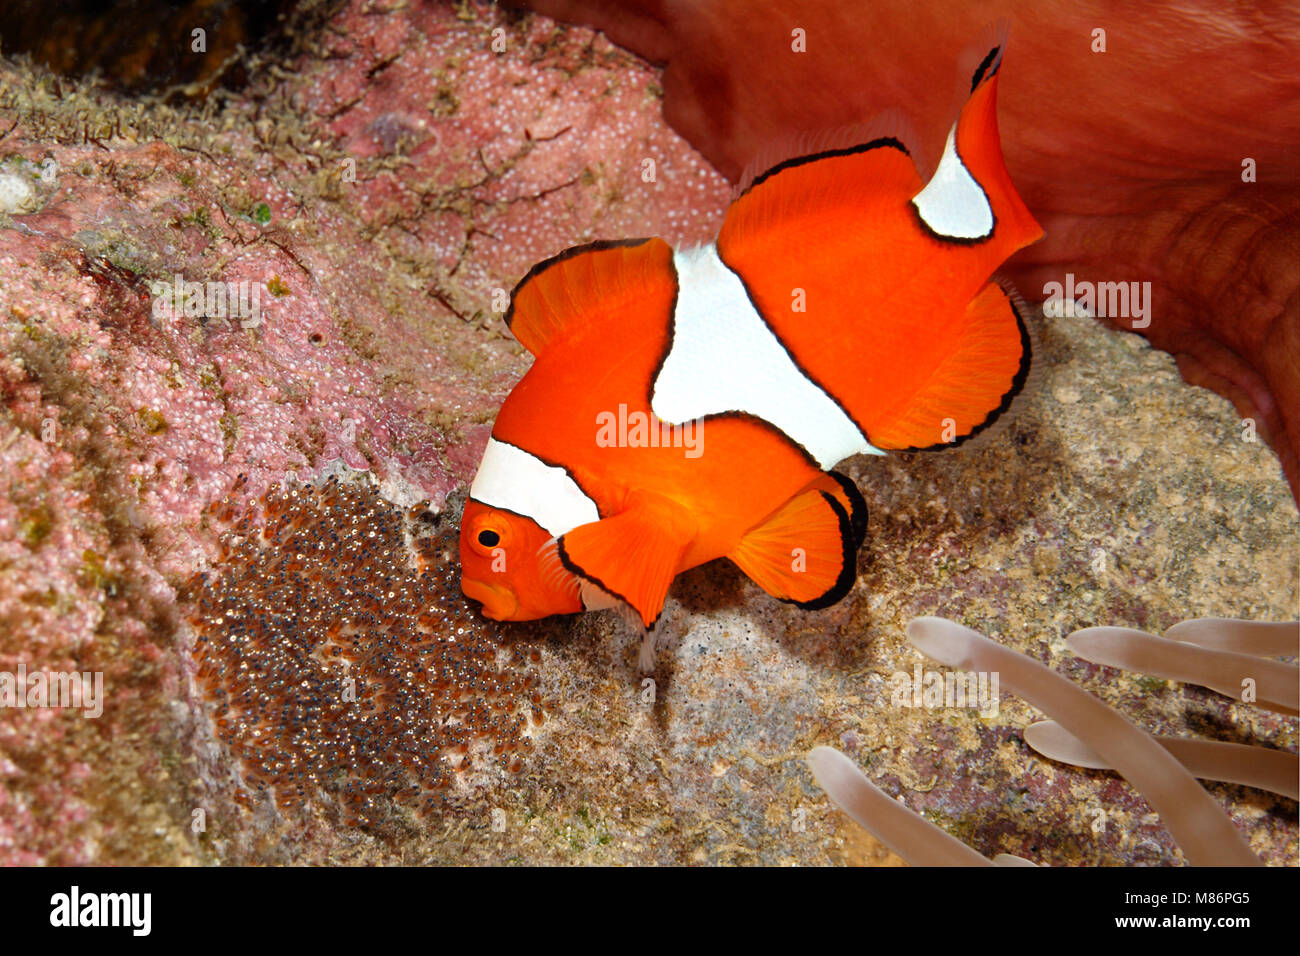 Clownfish Eggs Stock Photos & Clownfish Eggs Stock Images - Alamy